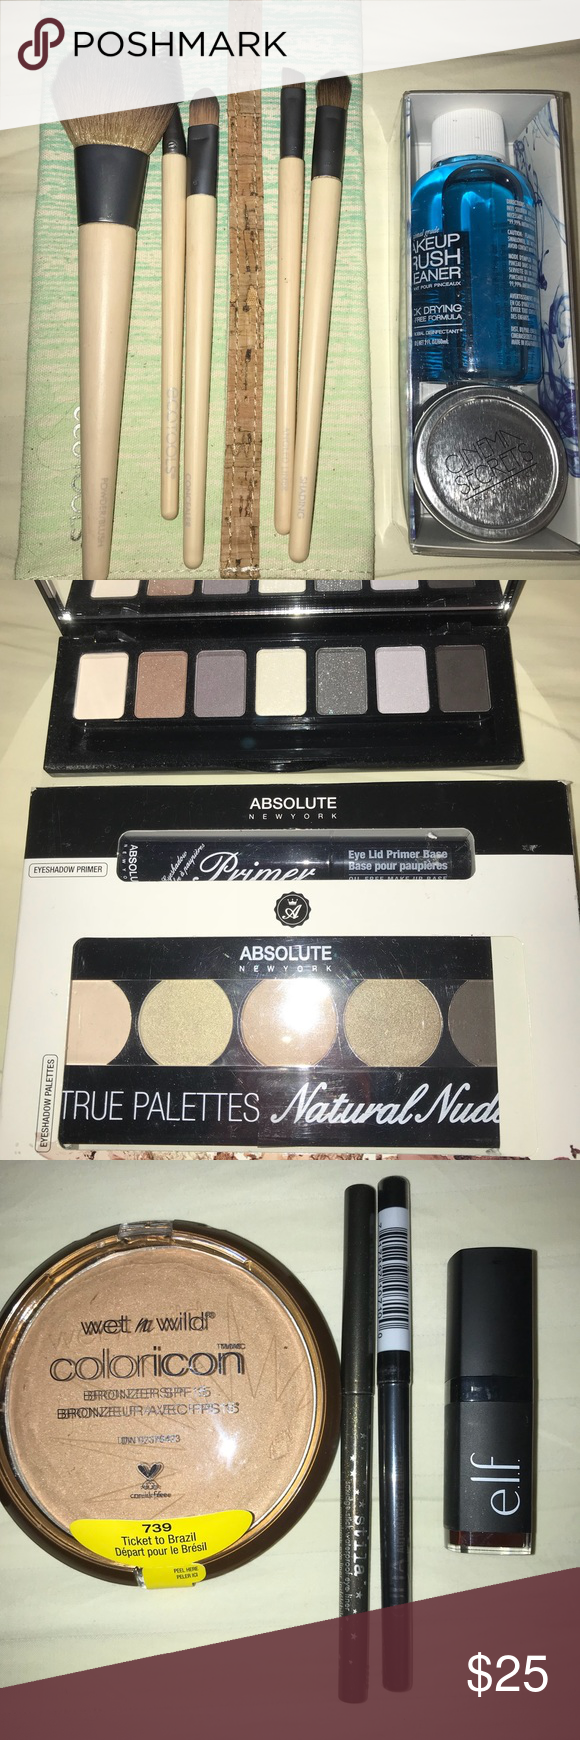 BRAND NEW Makeup and Brushes Bundle!!! NWT Berry